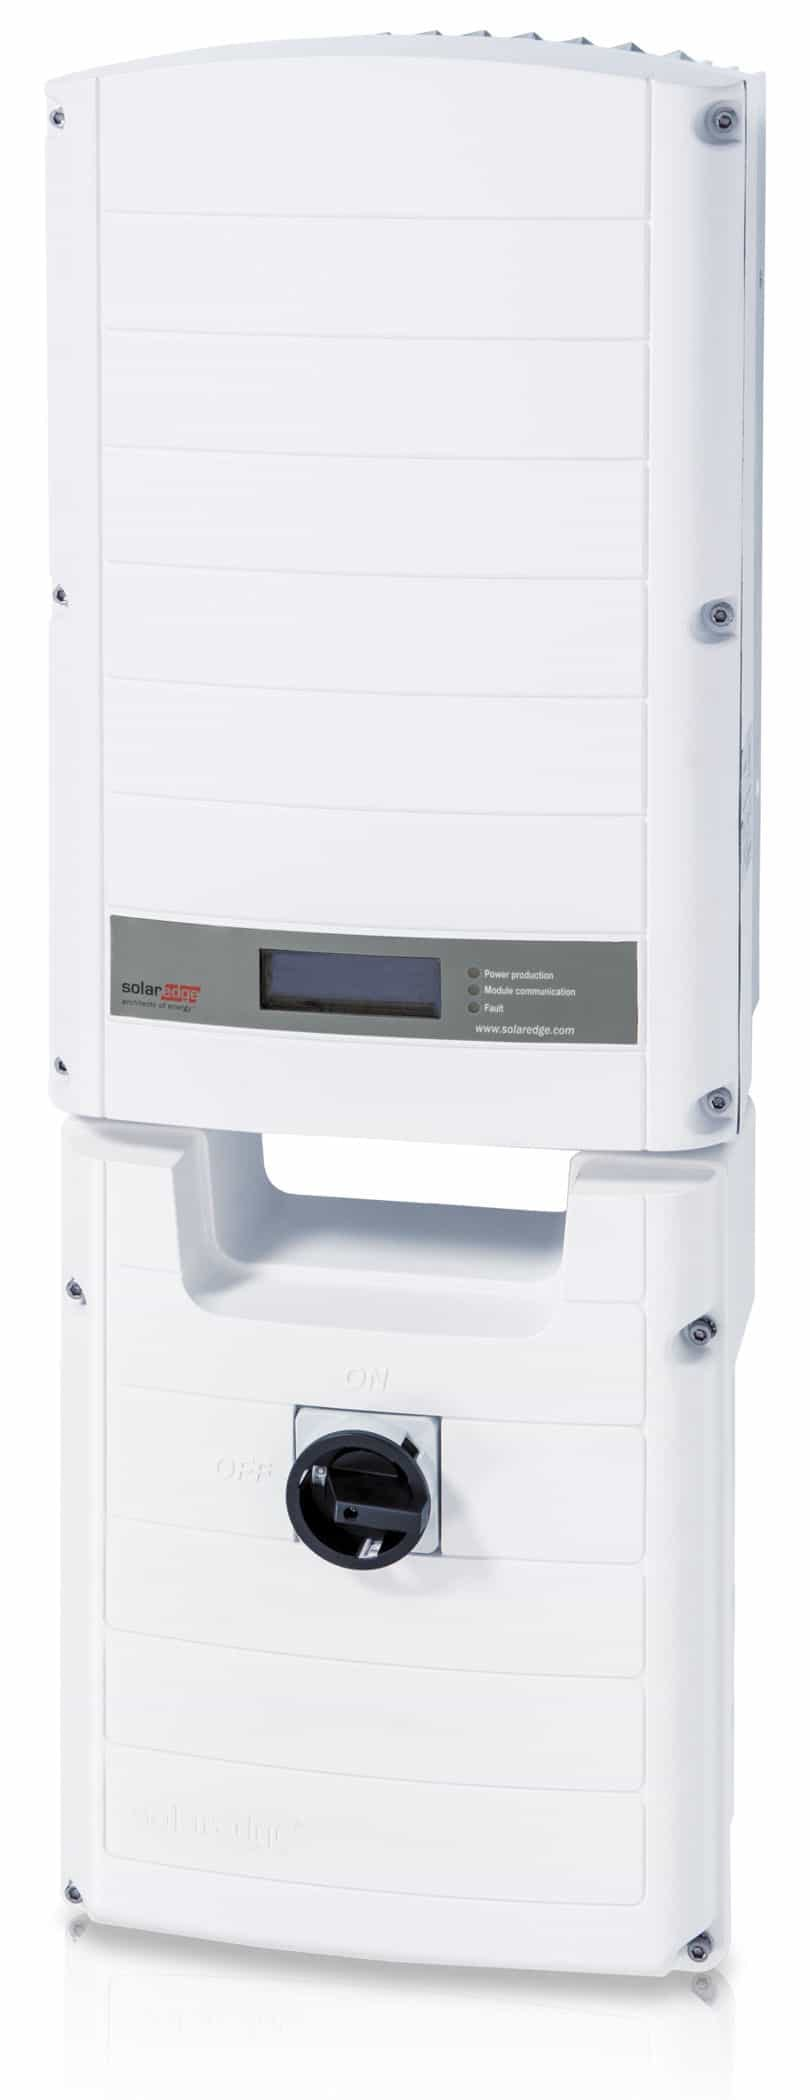 SolarEdge SE3800A 3.8KW StorEdge™ High Power Inverter